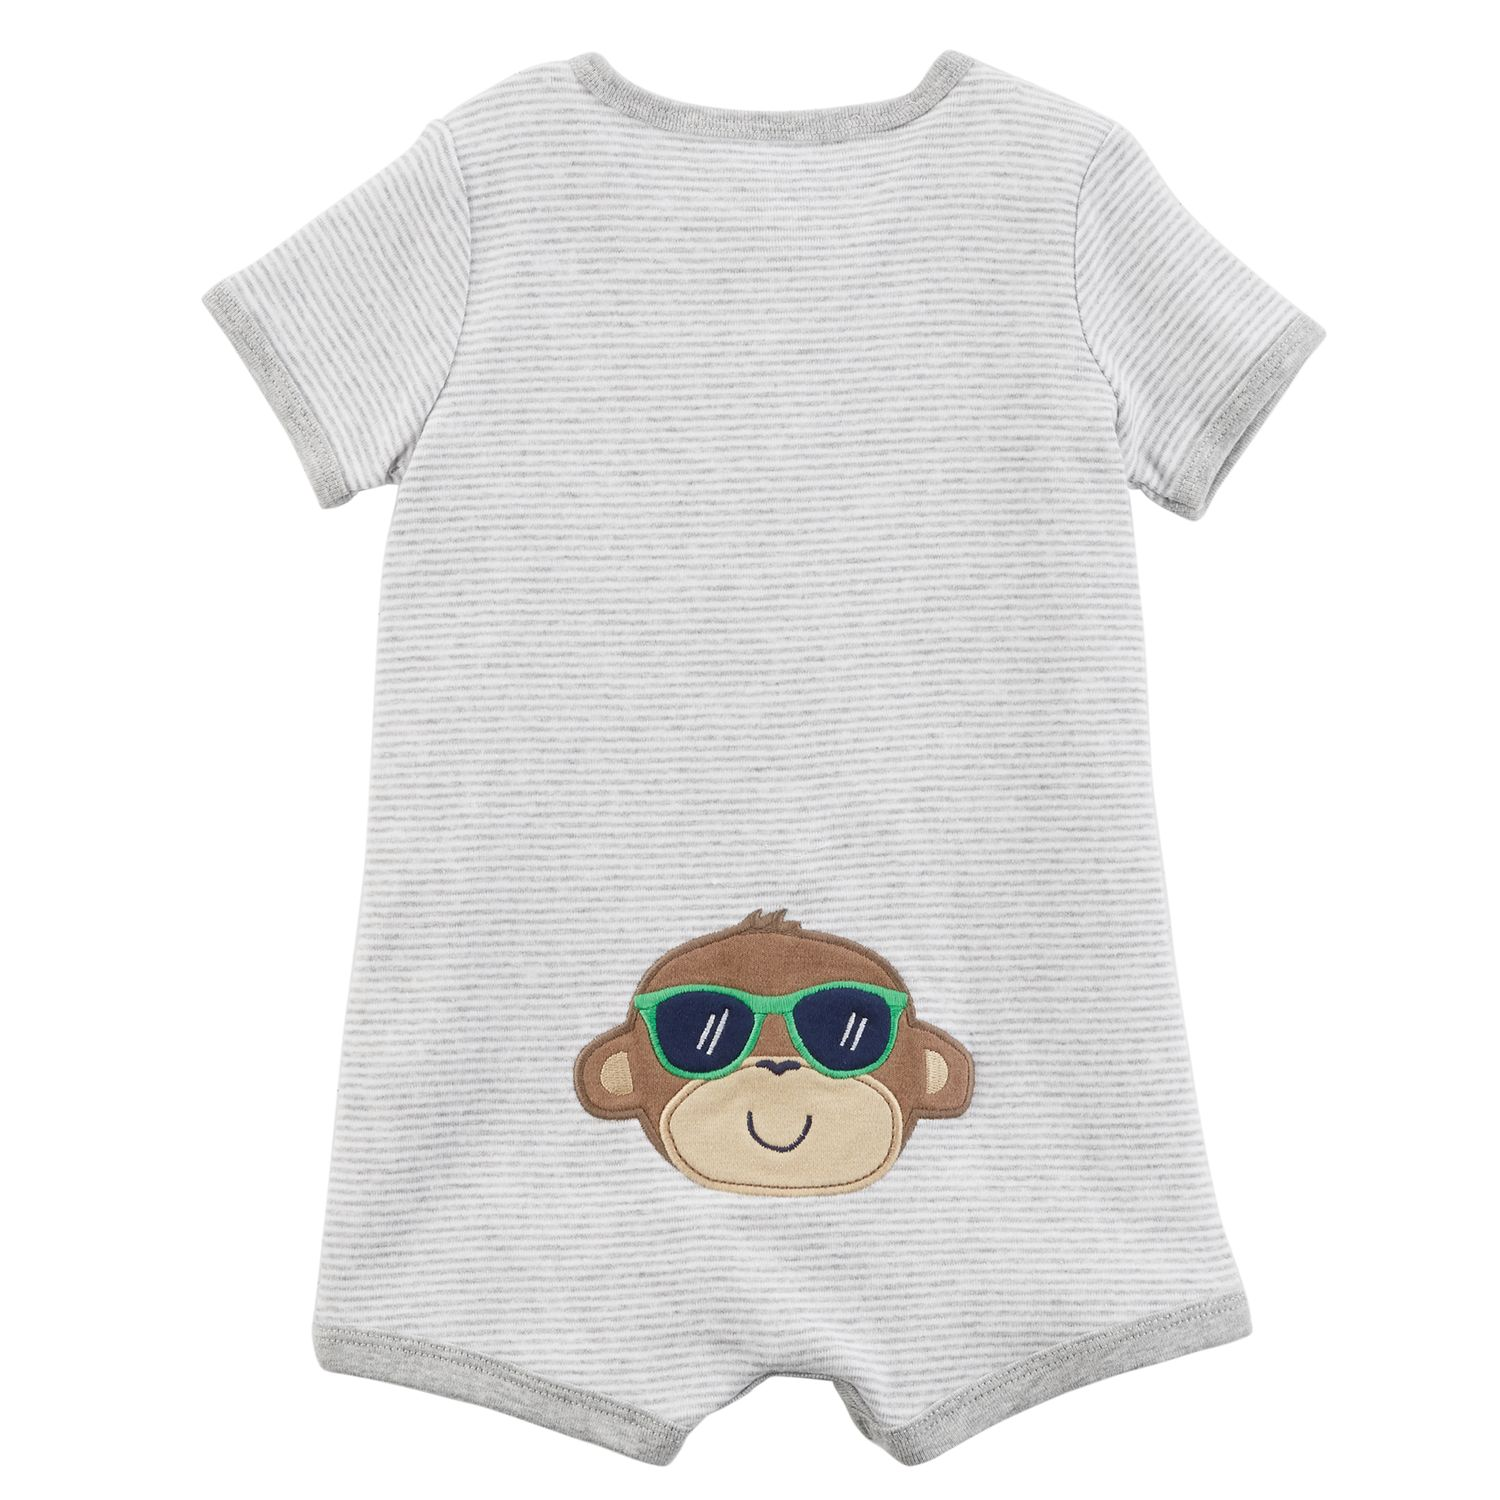 Boys Jumpsuits & Rompers Baby ePiece Clothing